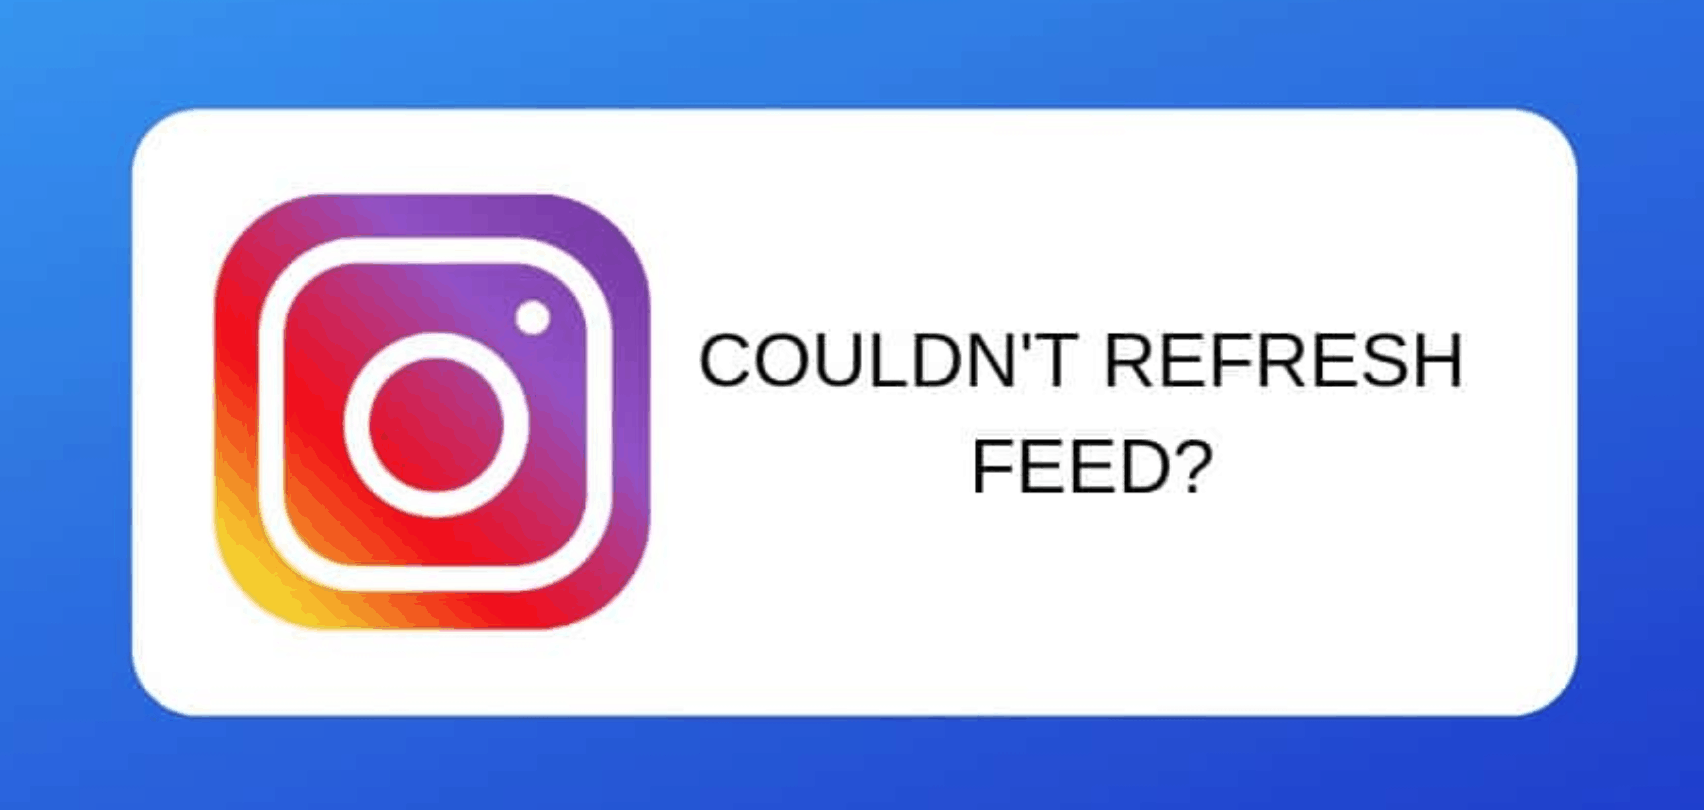 Instagram users cant refresh feed